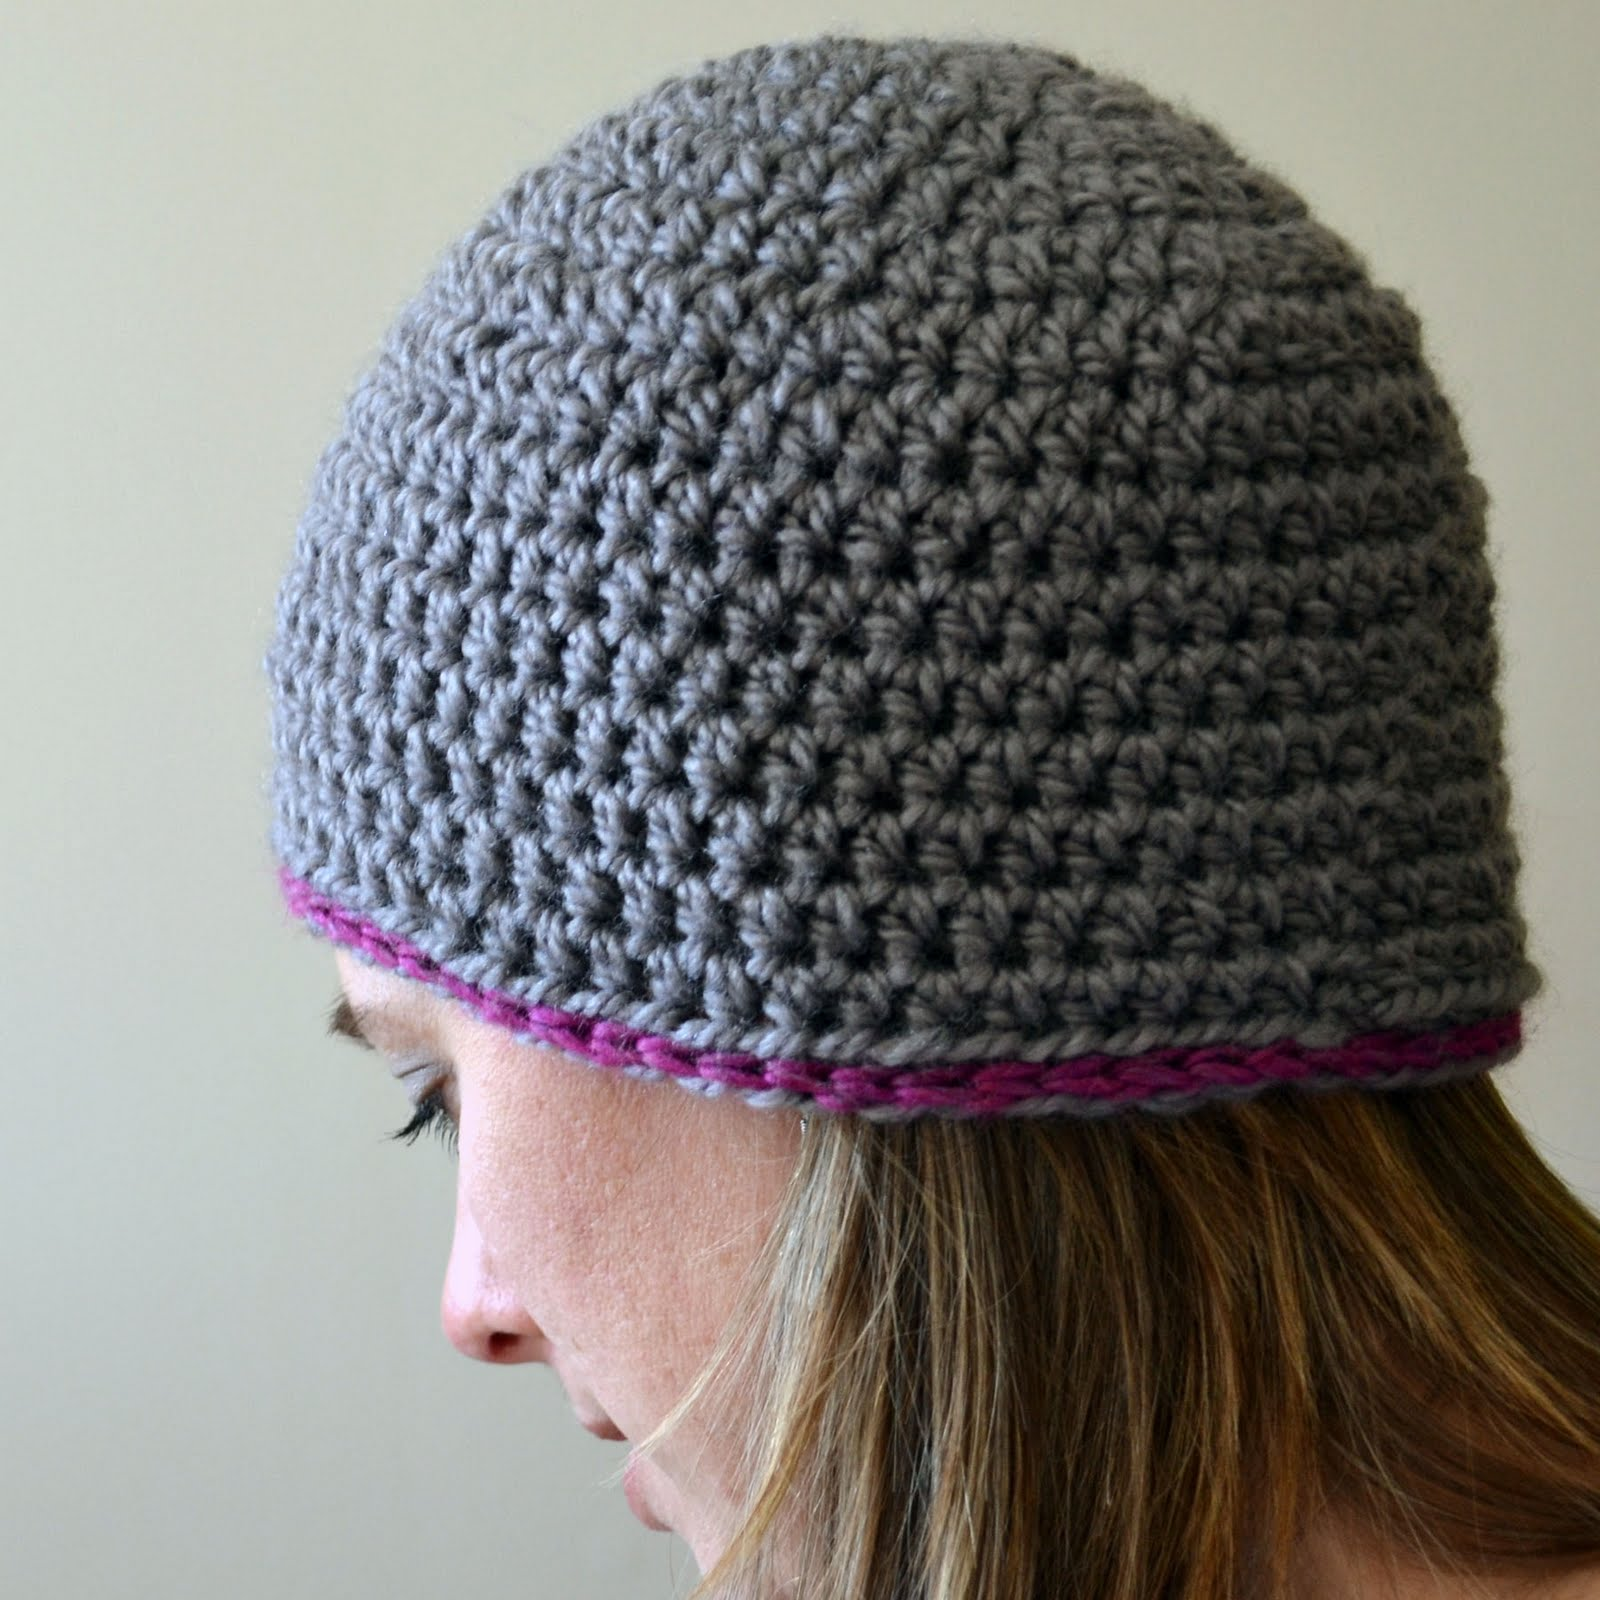 Free Knitting Pattern Beanie Easy : Crochet in Color: Chunky Beanie Pattern